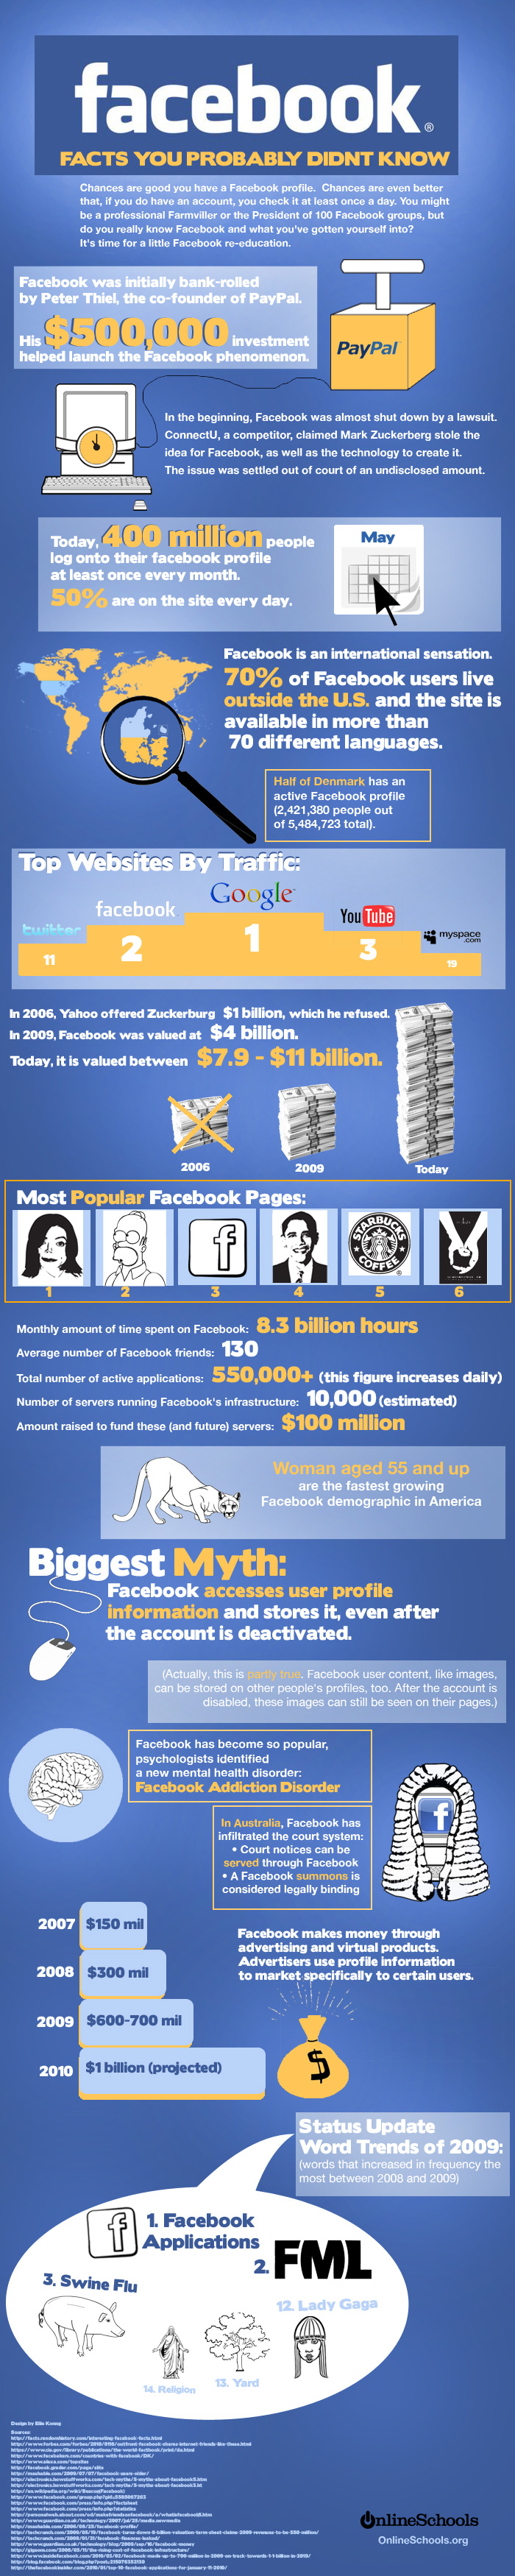 Facts You Probably Didn't Know About Facebook [INFOGRAPHIC]